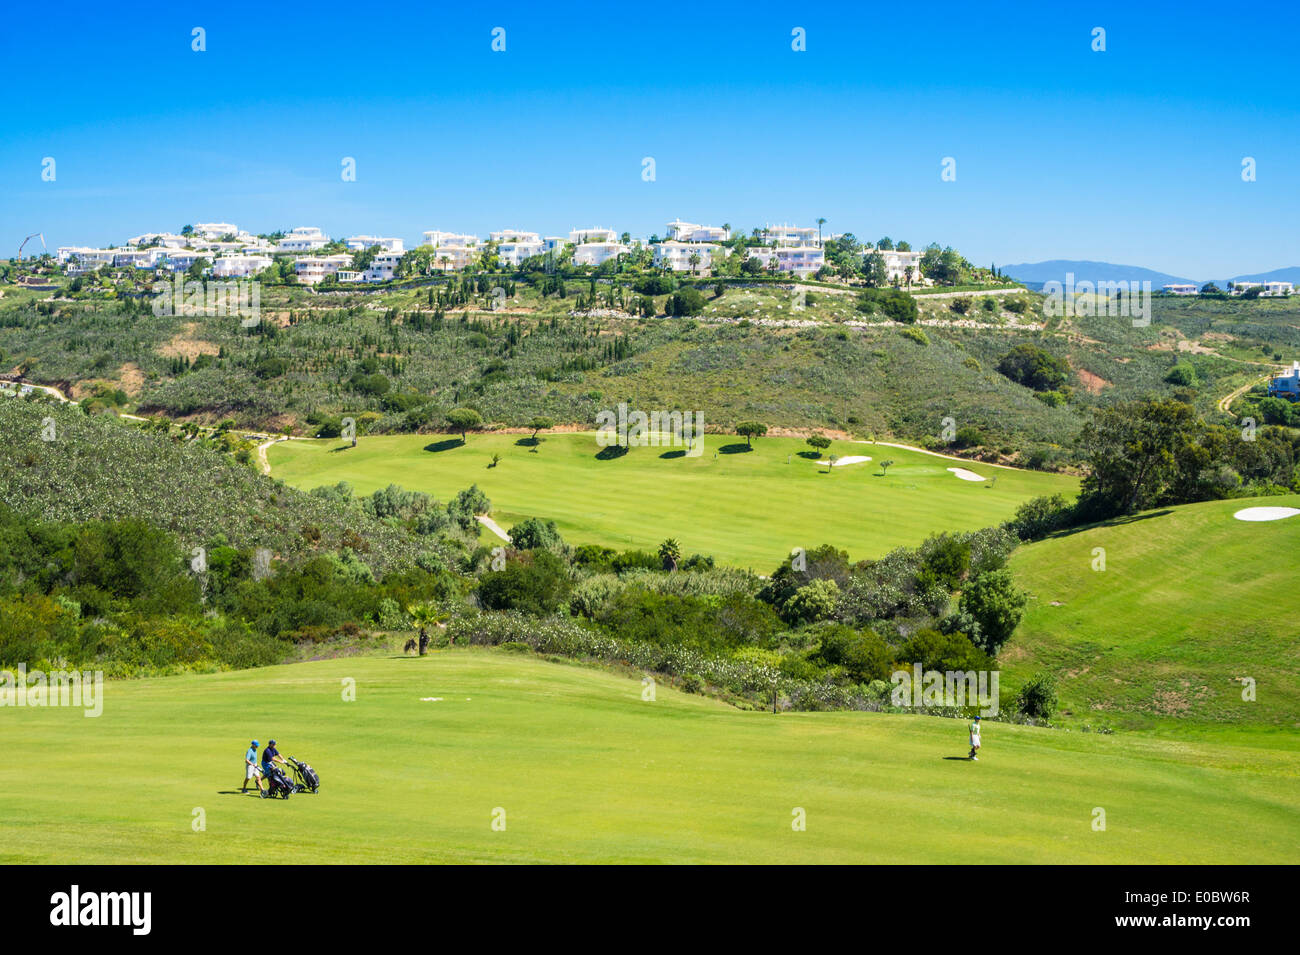 Golfers playing golf o0n the first fairway at Parque da Floresta golf course Vale do Poco Budens  near Salema Algarve Portugal - Stock Image